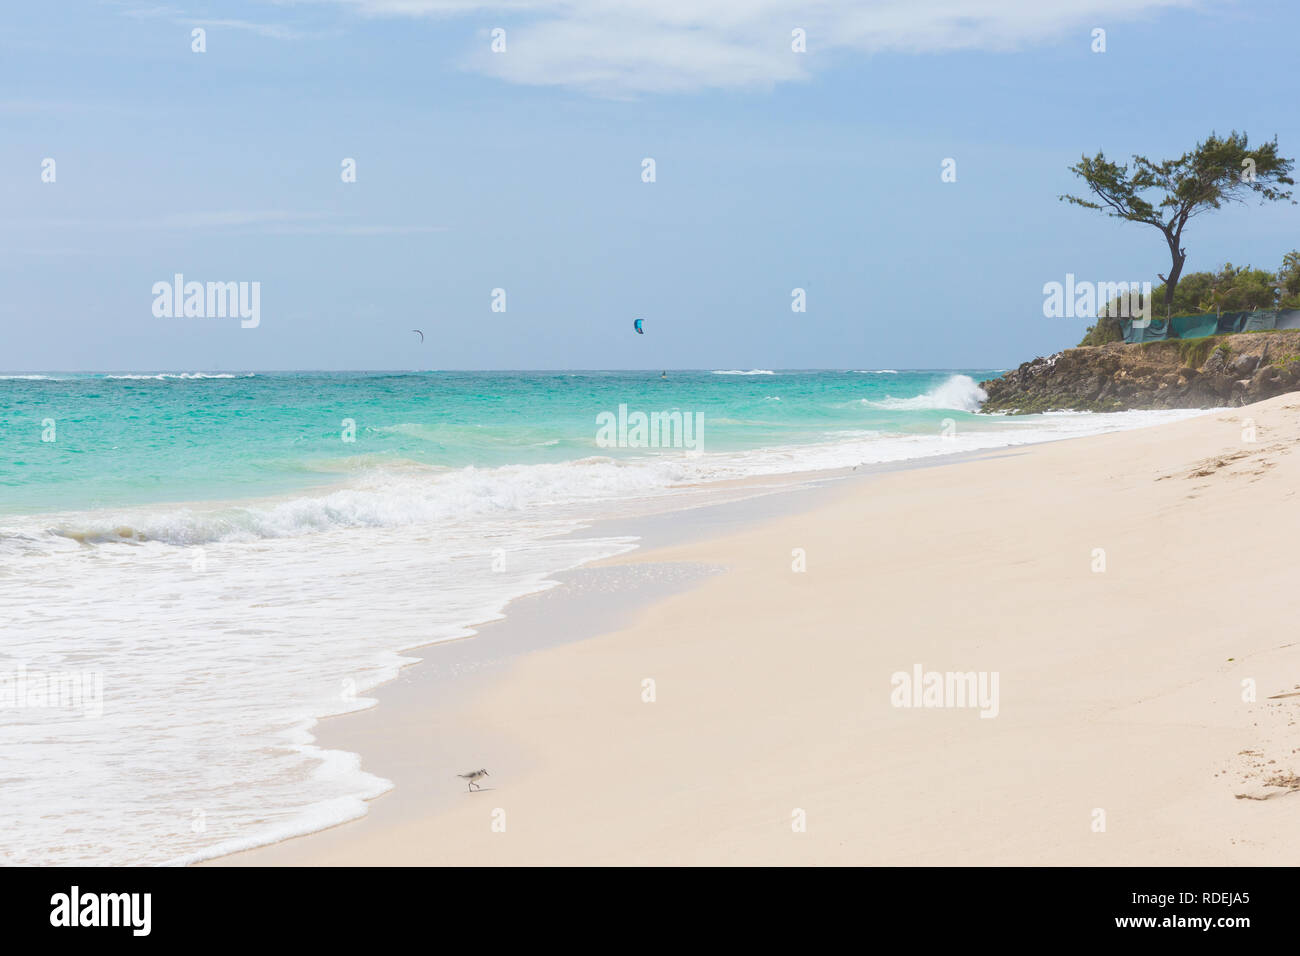 A white beach at Silver Sands on Barbados. Ocean waves roll in. Kitesurfers play in the safe waters off-shore. - Stock Image